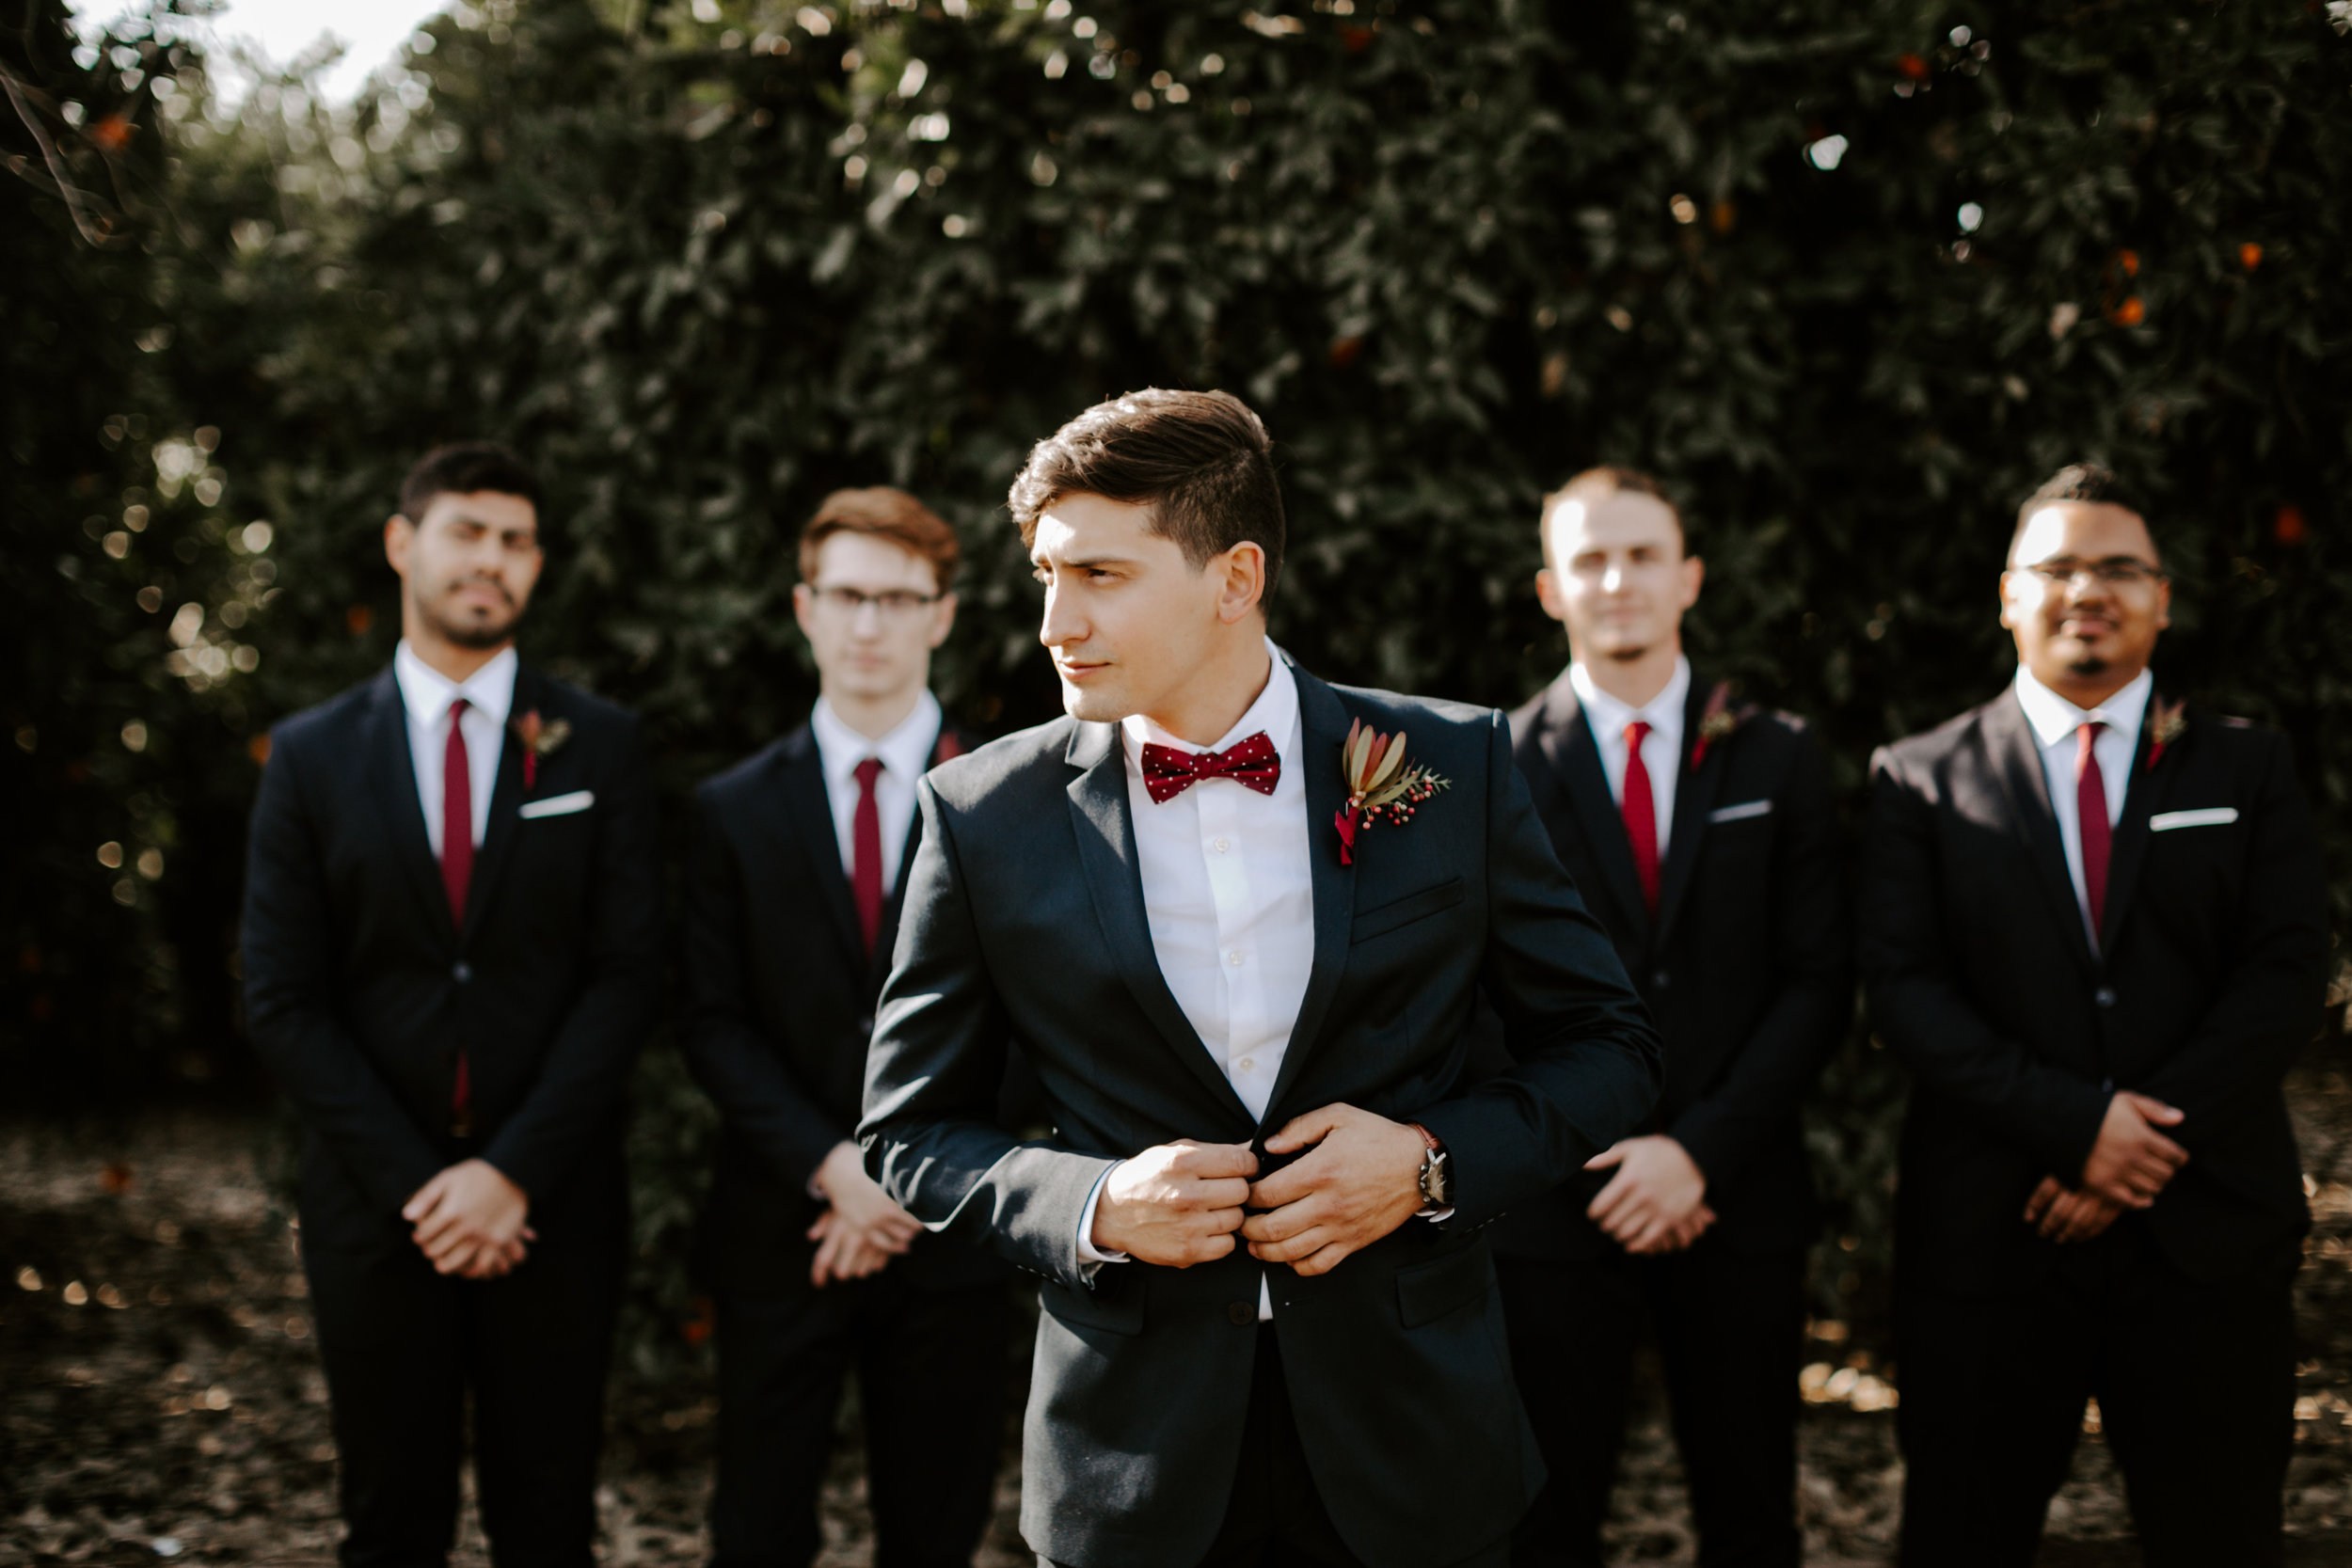 Seven Sycamores Ranch Wedding Gabby & Yosef Emily Magers Photography-225.jpg